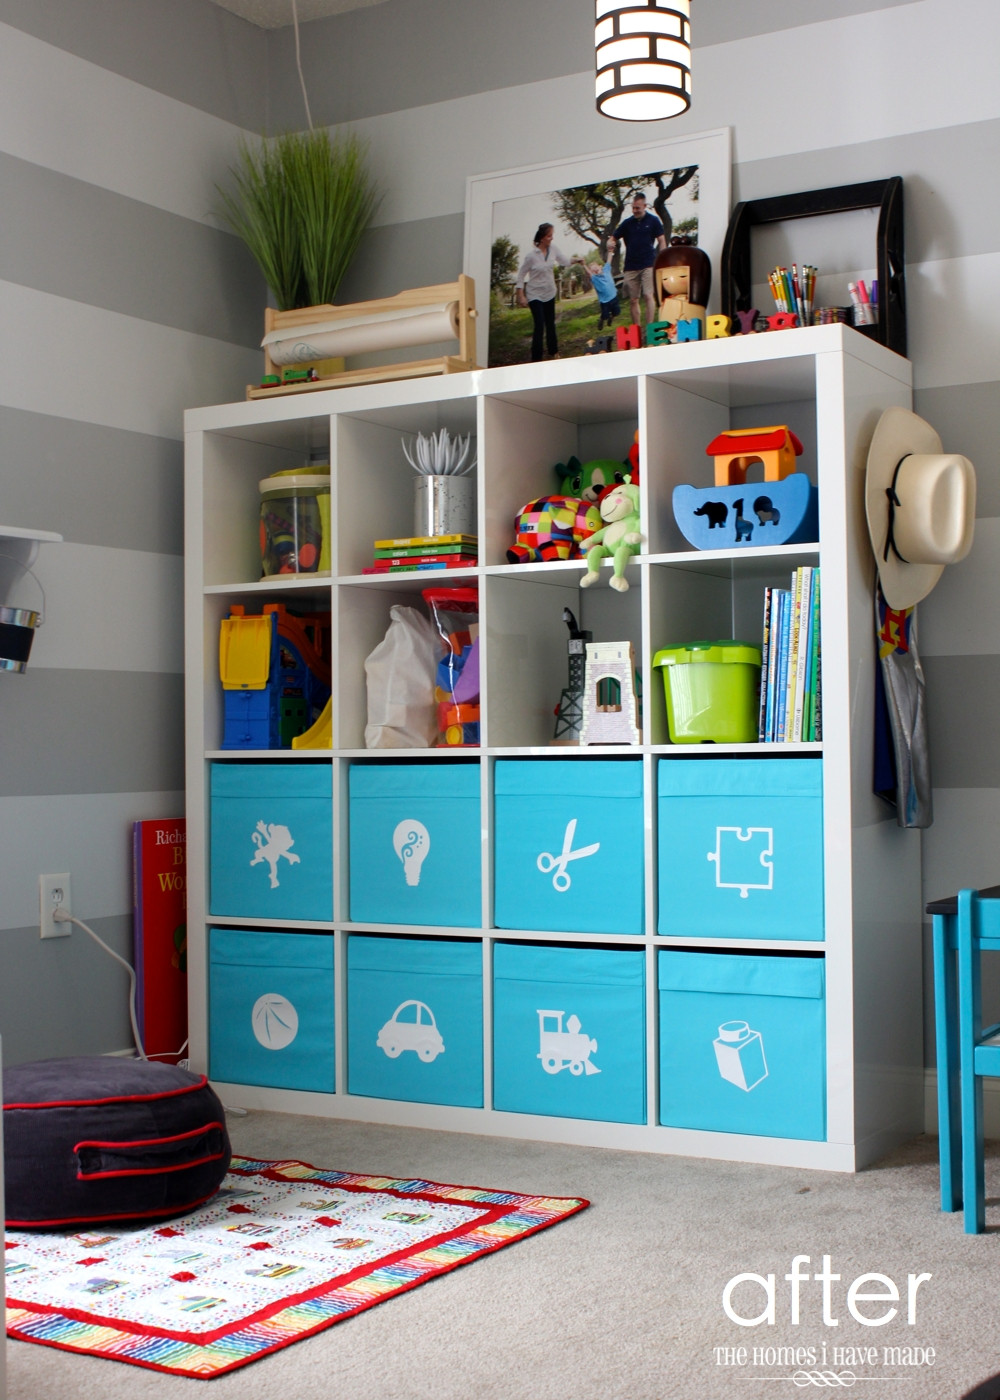 Best ideas about Ikea Toy Storage Ideas . Save or Pin Toy Storage in an IKEA Expedit Now.